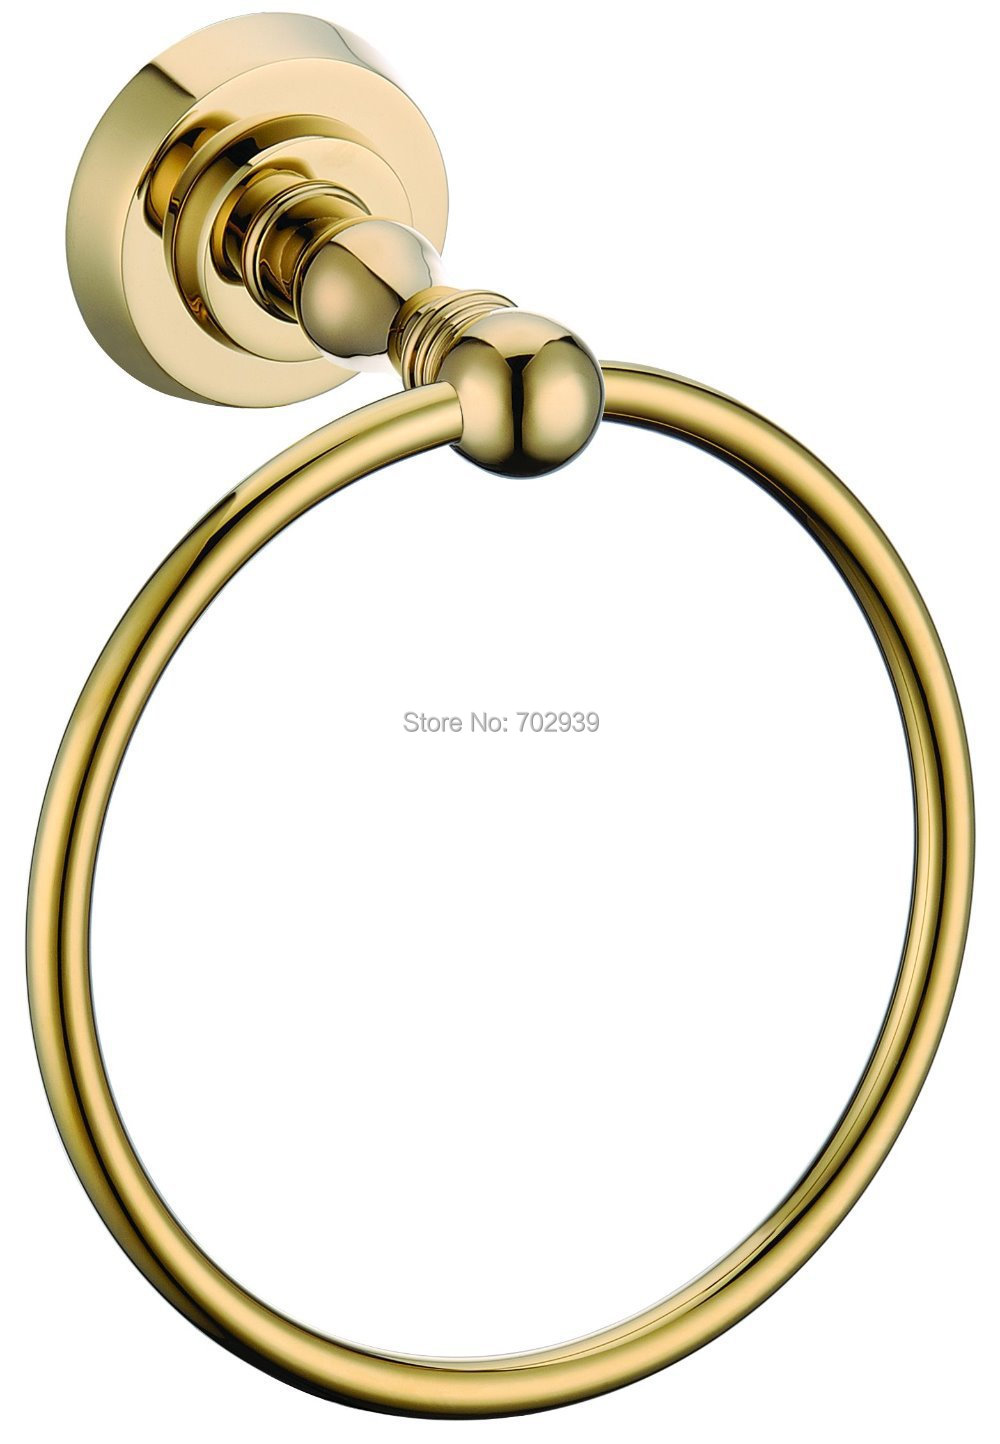 FREE SHIPPING NEW design 24k GOLD round  towel ring  D